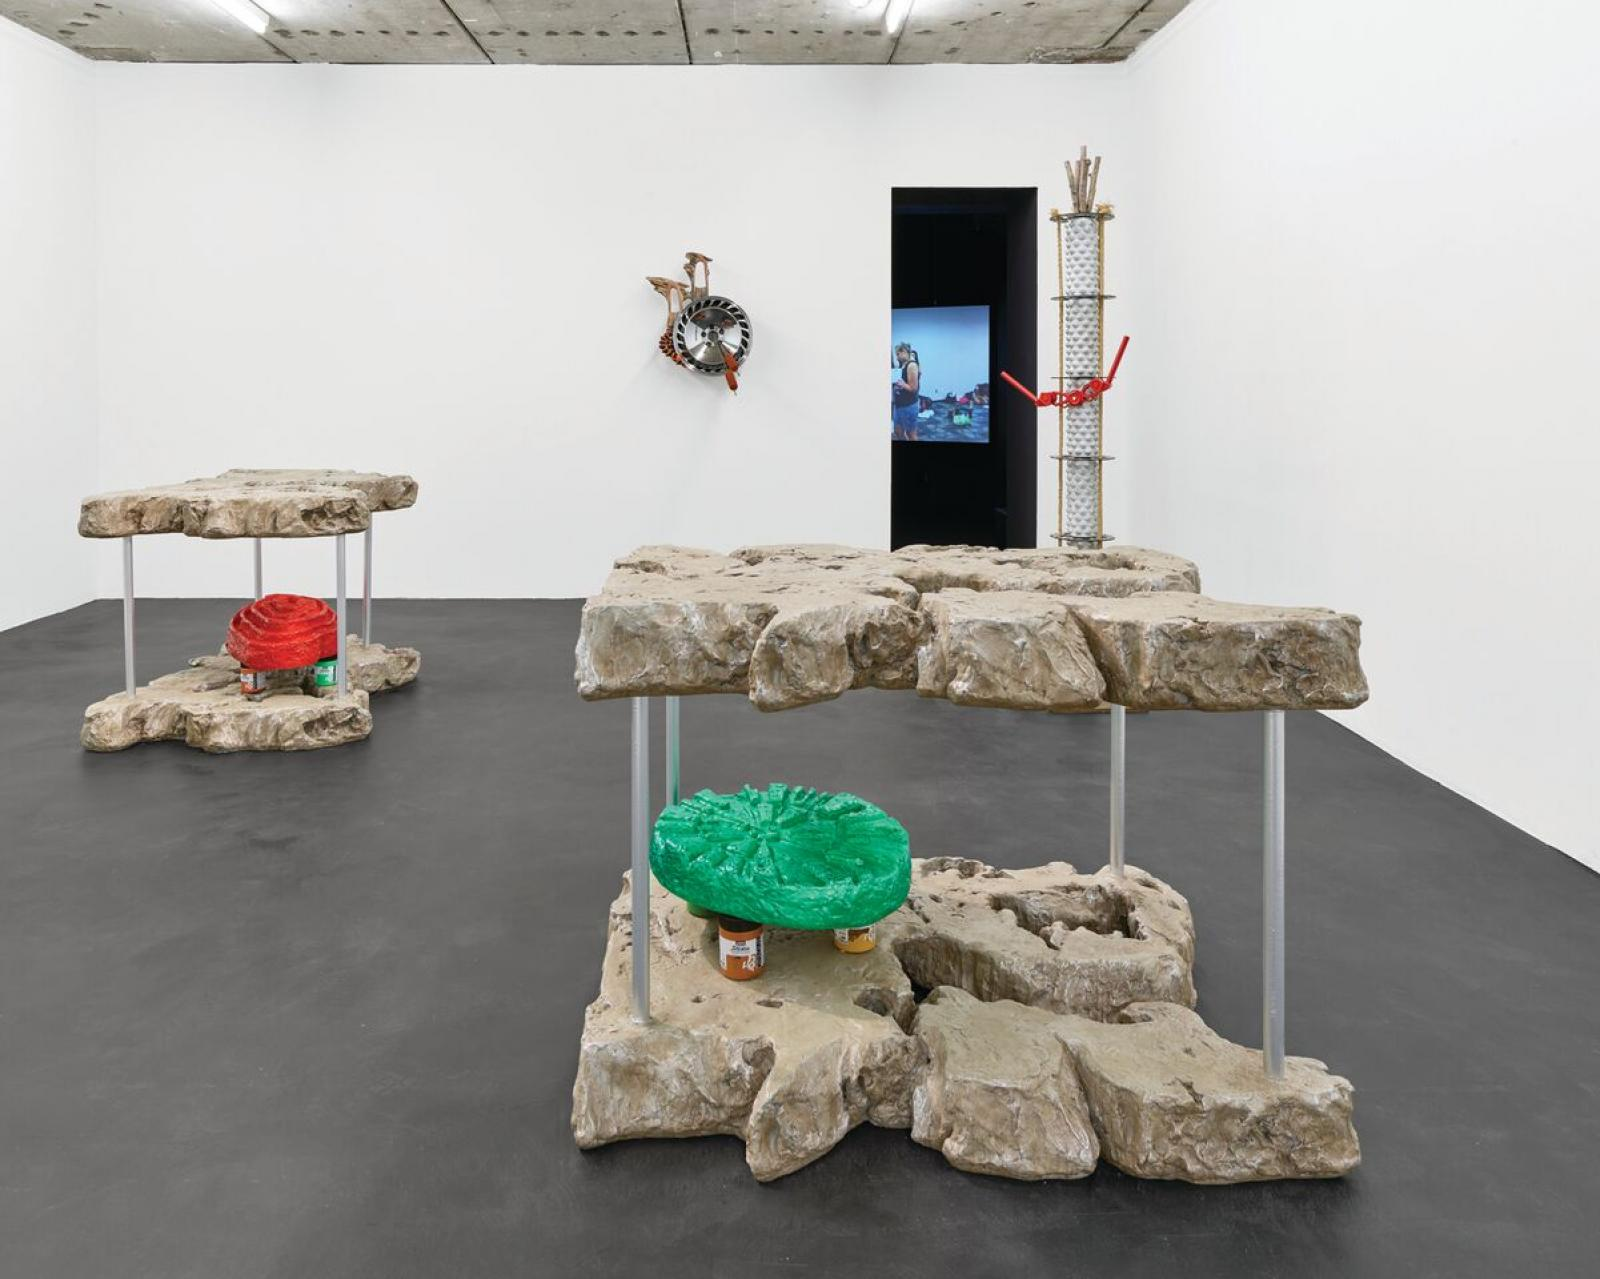 Guan Xiao /Living Sci-Fi, under the red stars installation view at Kraupa-Tuskany Zeidler/